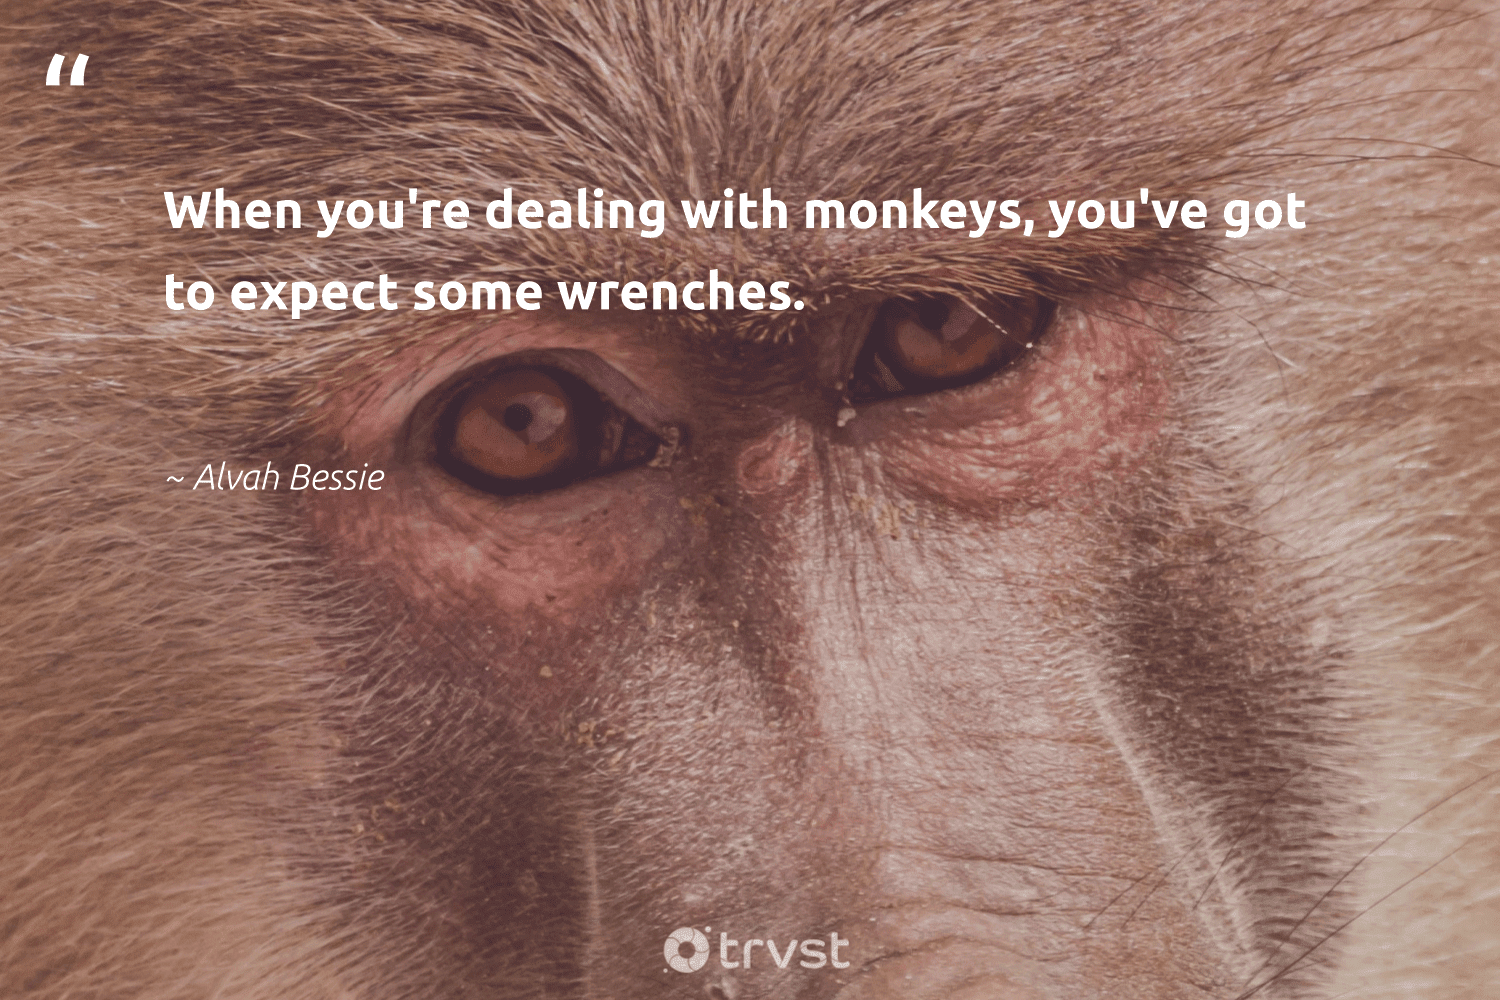 """""""When you're dealing with monkeys, you've got to expect some wrenches.""""  - Alvah Bessie #trvst #quotes #monkeys #conservation #planetearthfirst #wild #bethechange #sustainability #ecoconscious #perfectnature #impact #wildlifeprotection"""